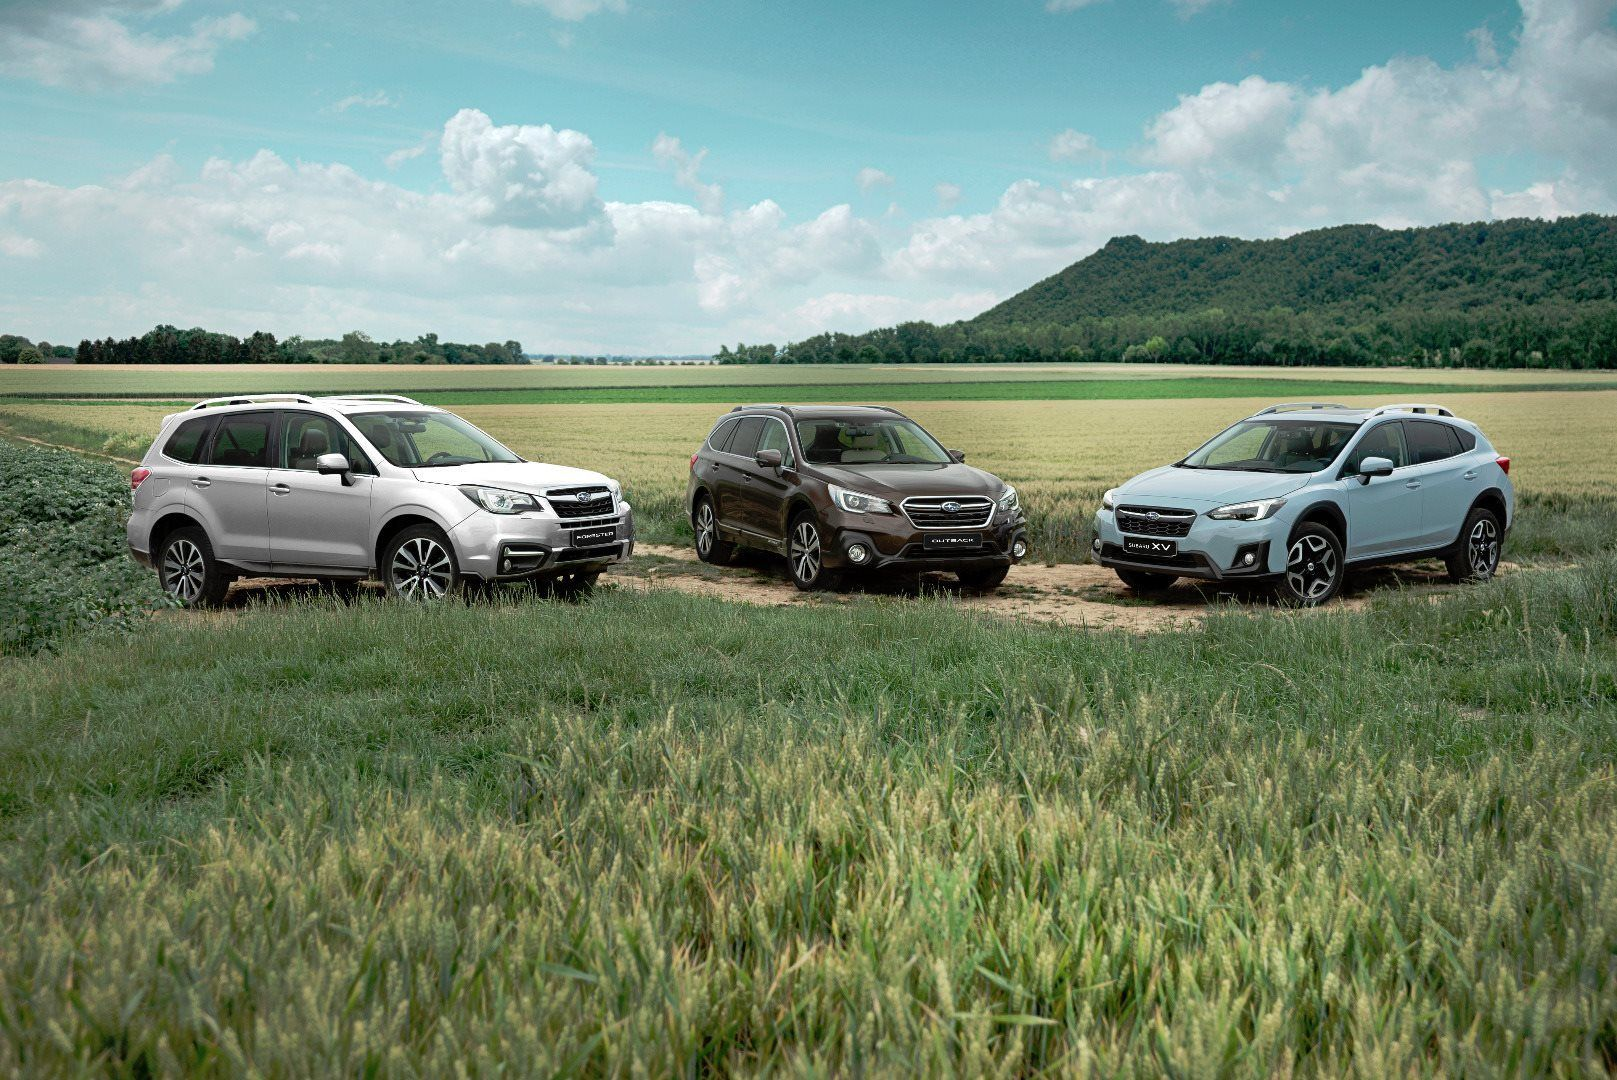 SUBARU CELEBRATES 60TH ANNIVERSARY WITH DIAMOND ANNIVERSARY VEHICLES